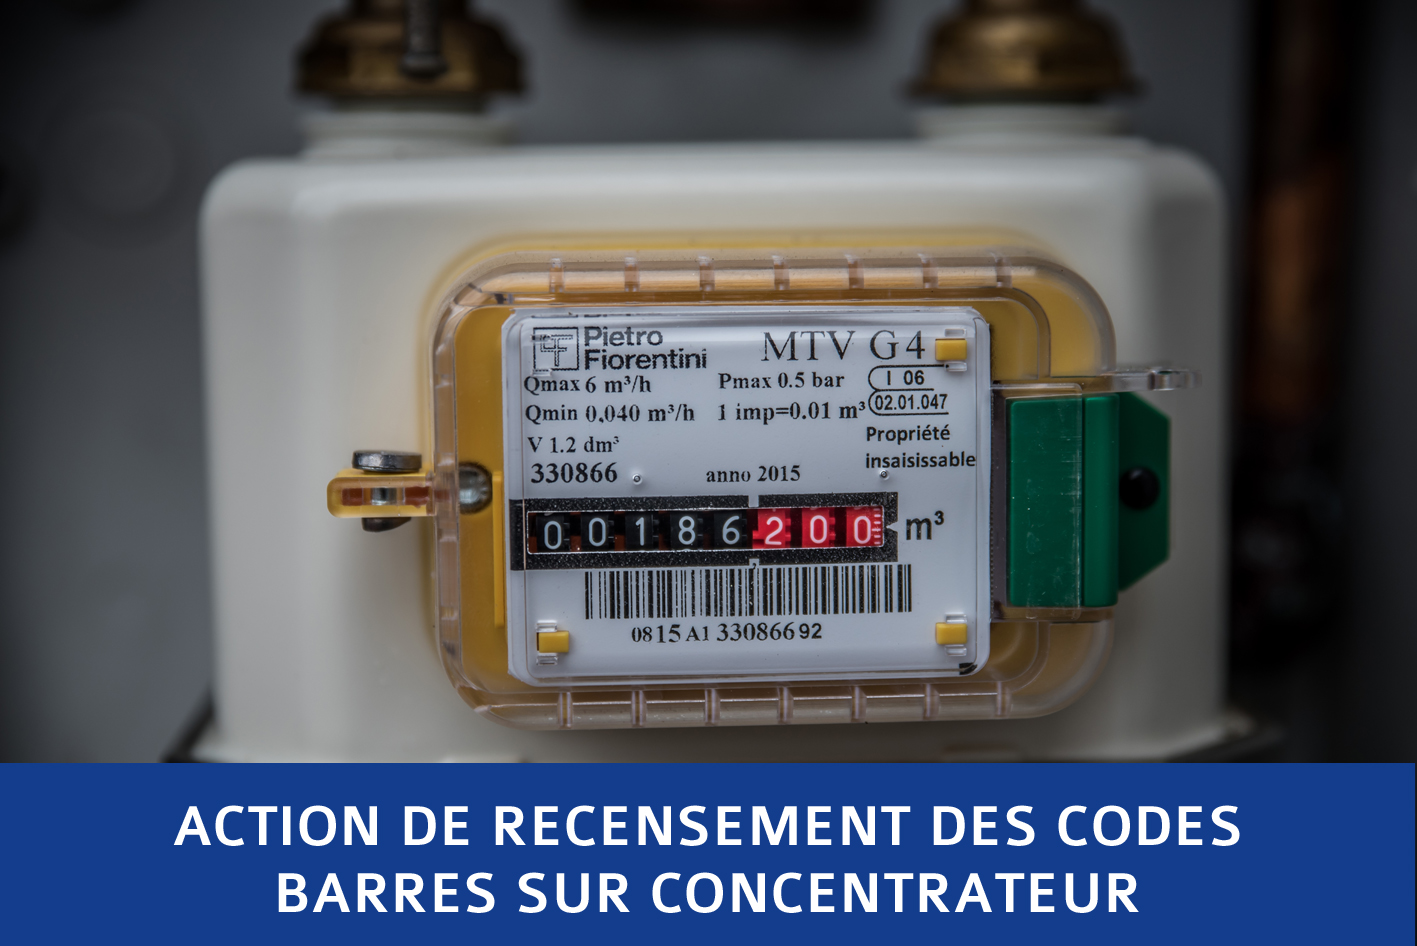 Recencement des codes barres